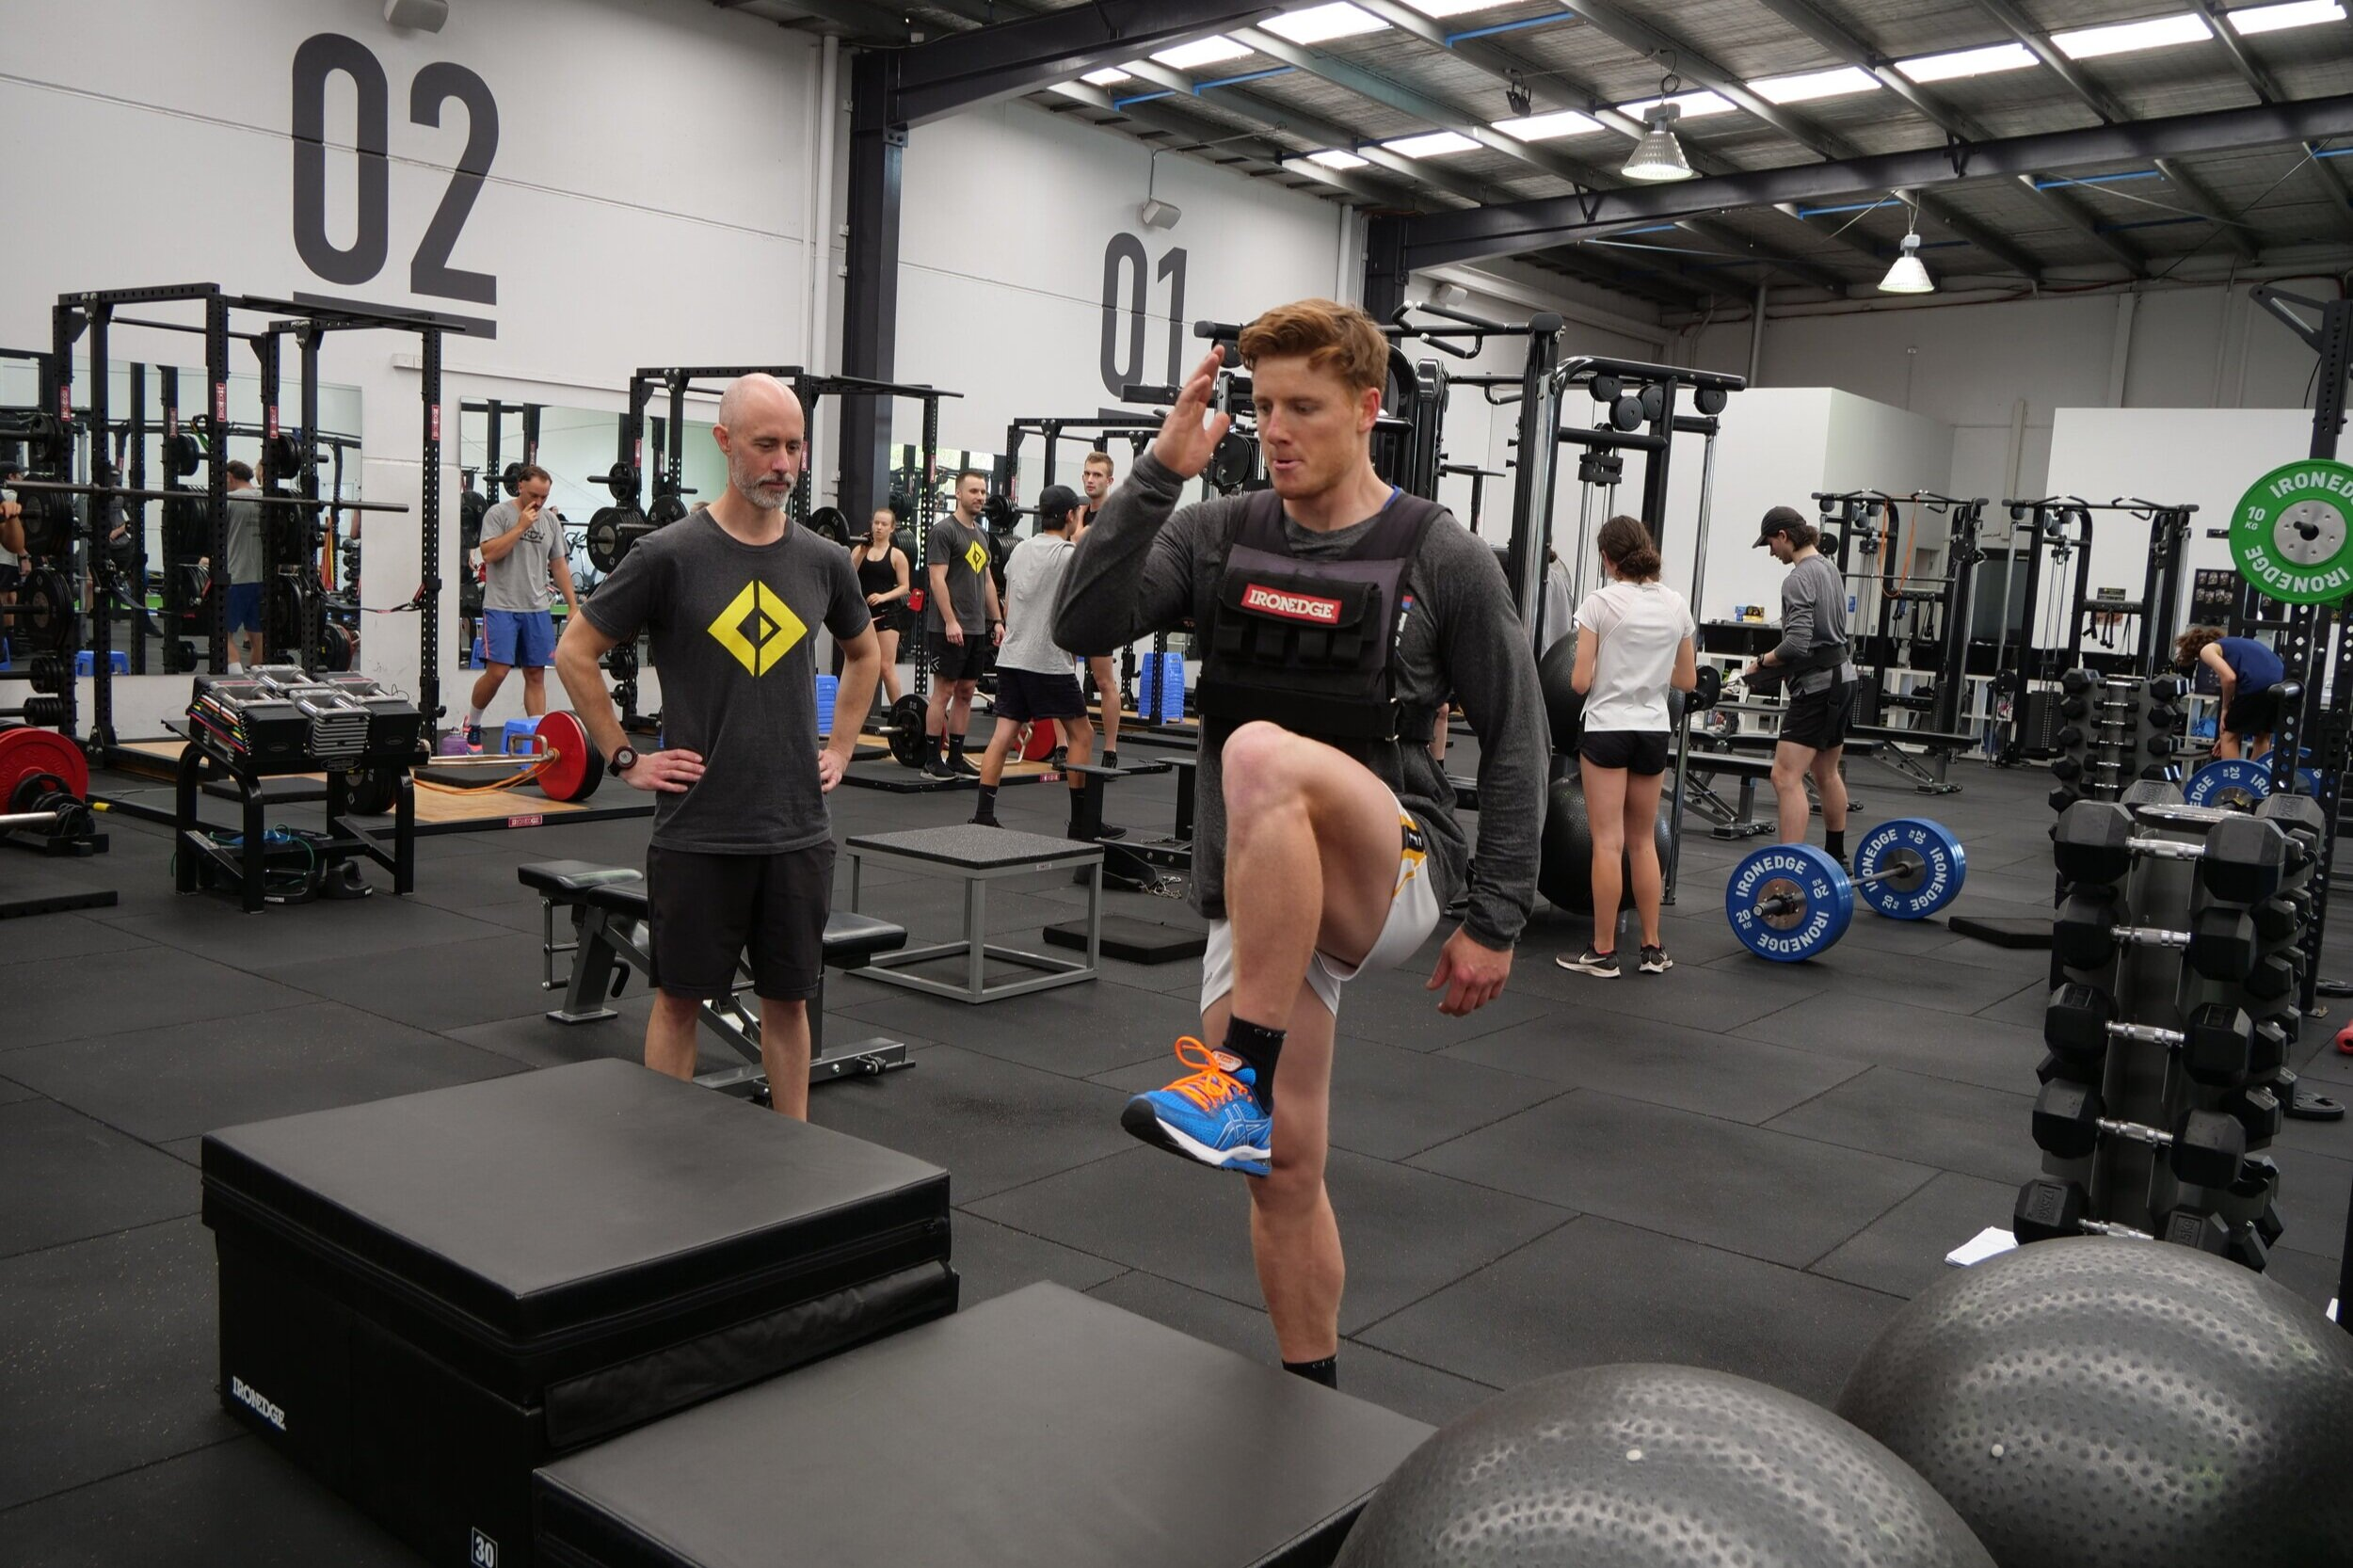 Unlimited training sessions to achieve your goals - Train in our state-of-the-art fully supervised gym with UNLIMITED weekly training sessions and see your athletic performance increase.